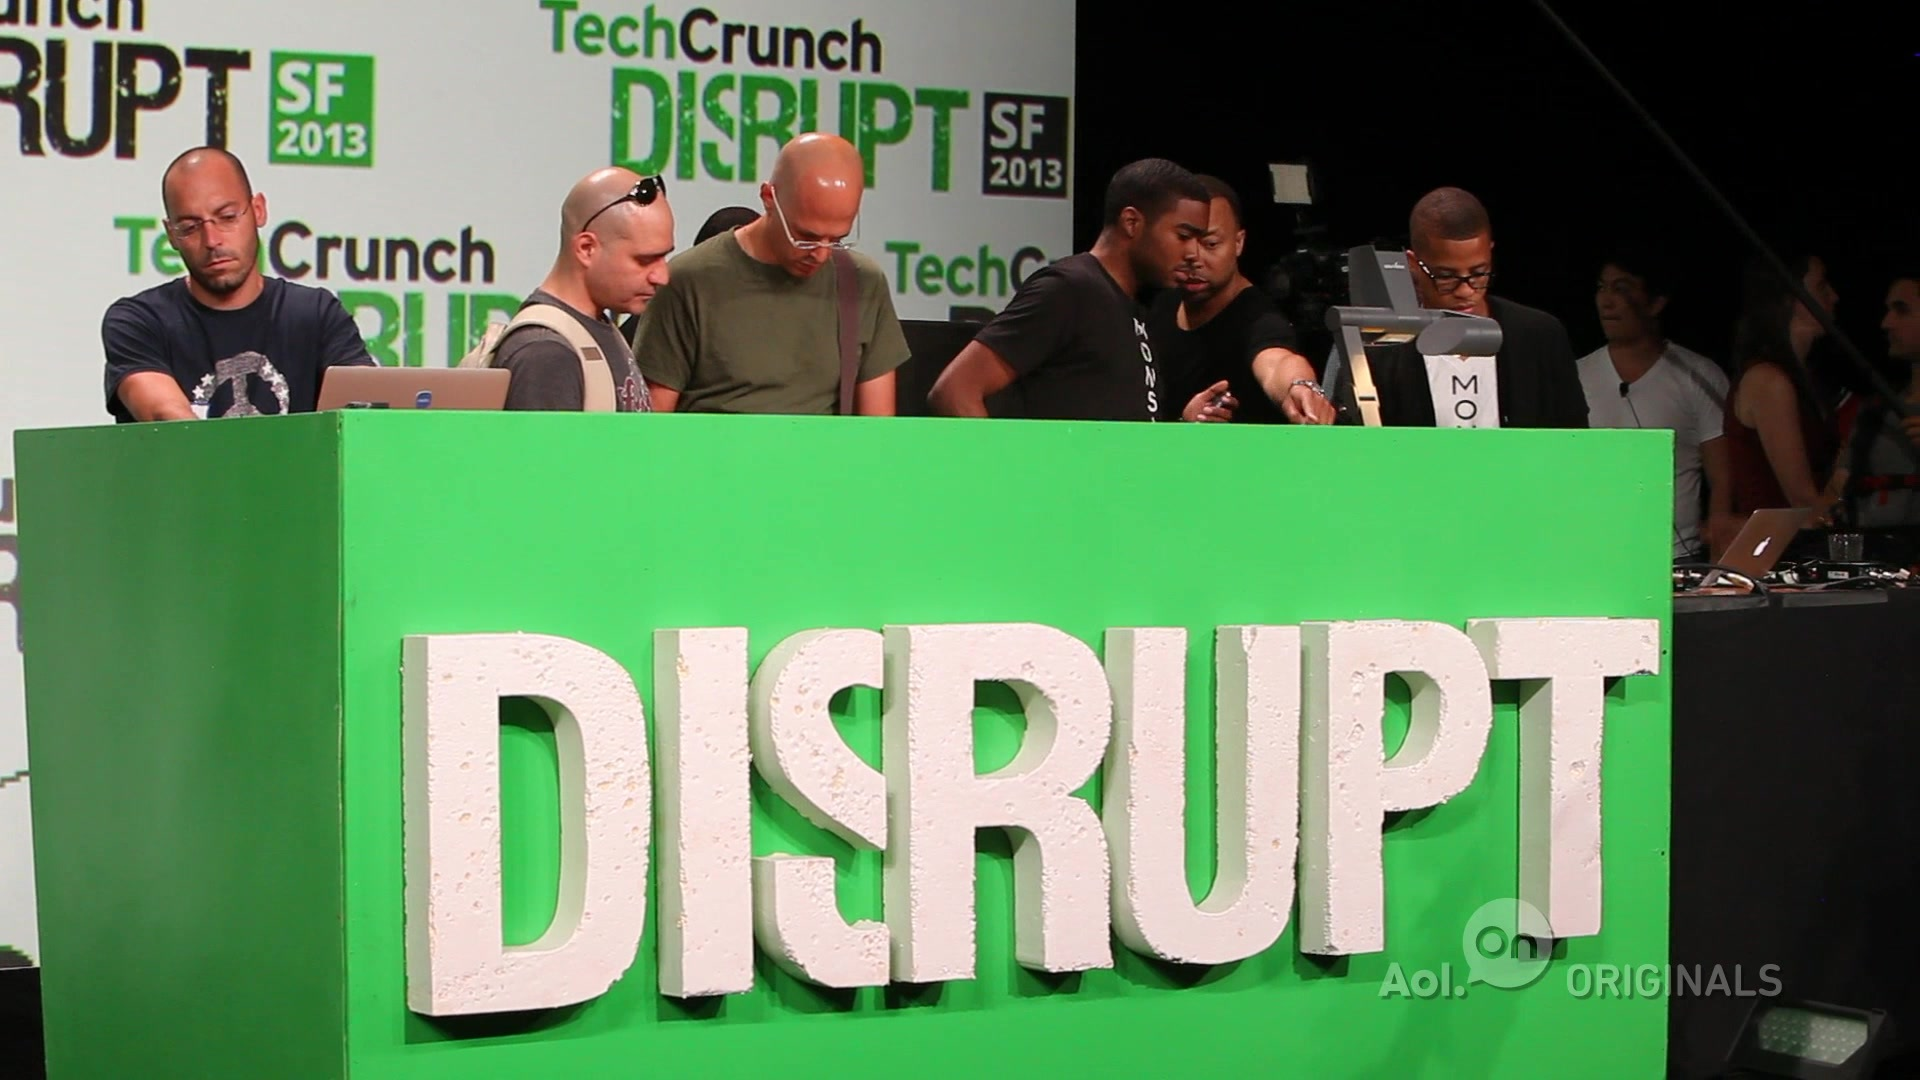 Behind the Scenes at Startup Battlefield | Road to Disrupt